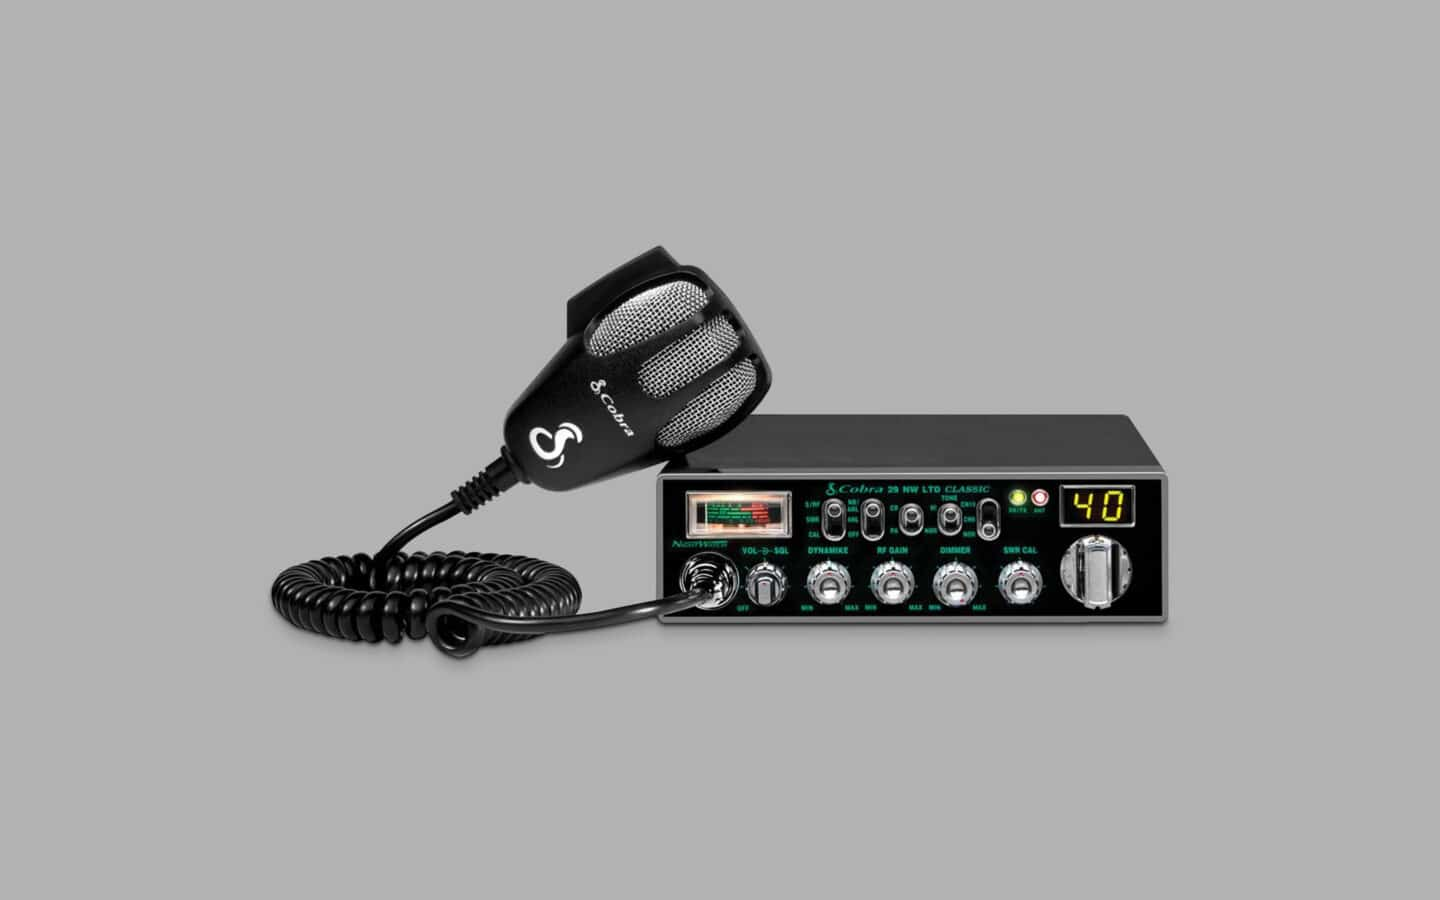 Best CB Radio 2